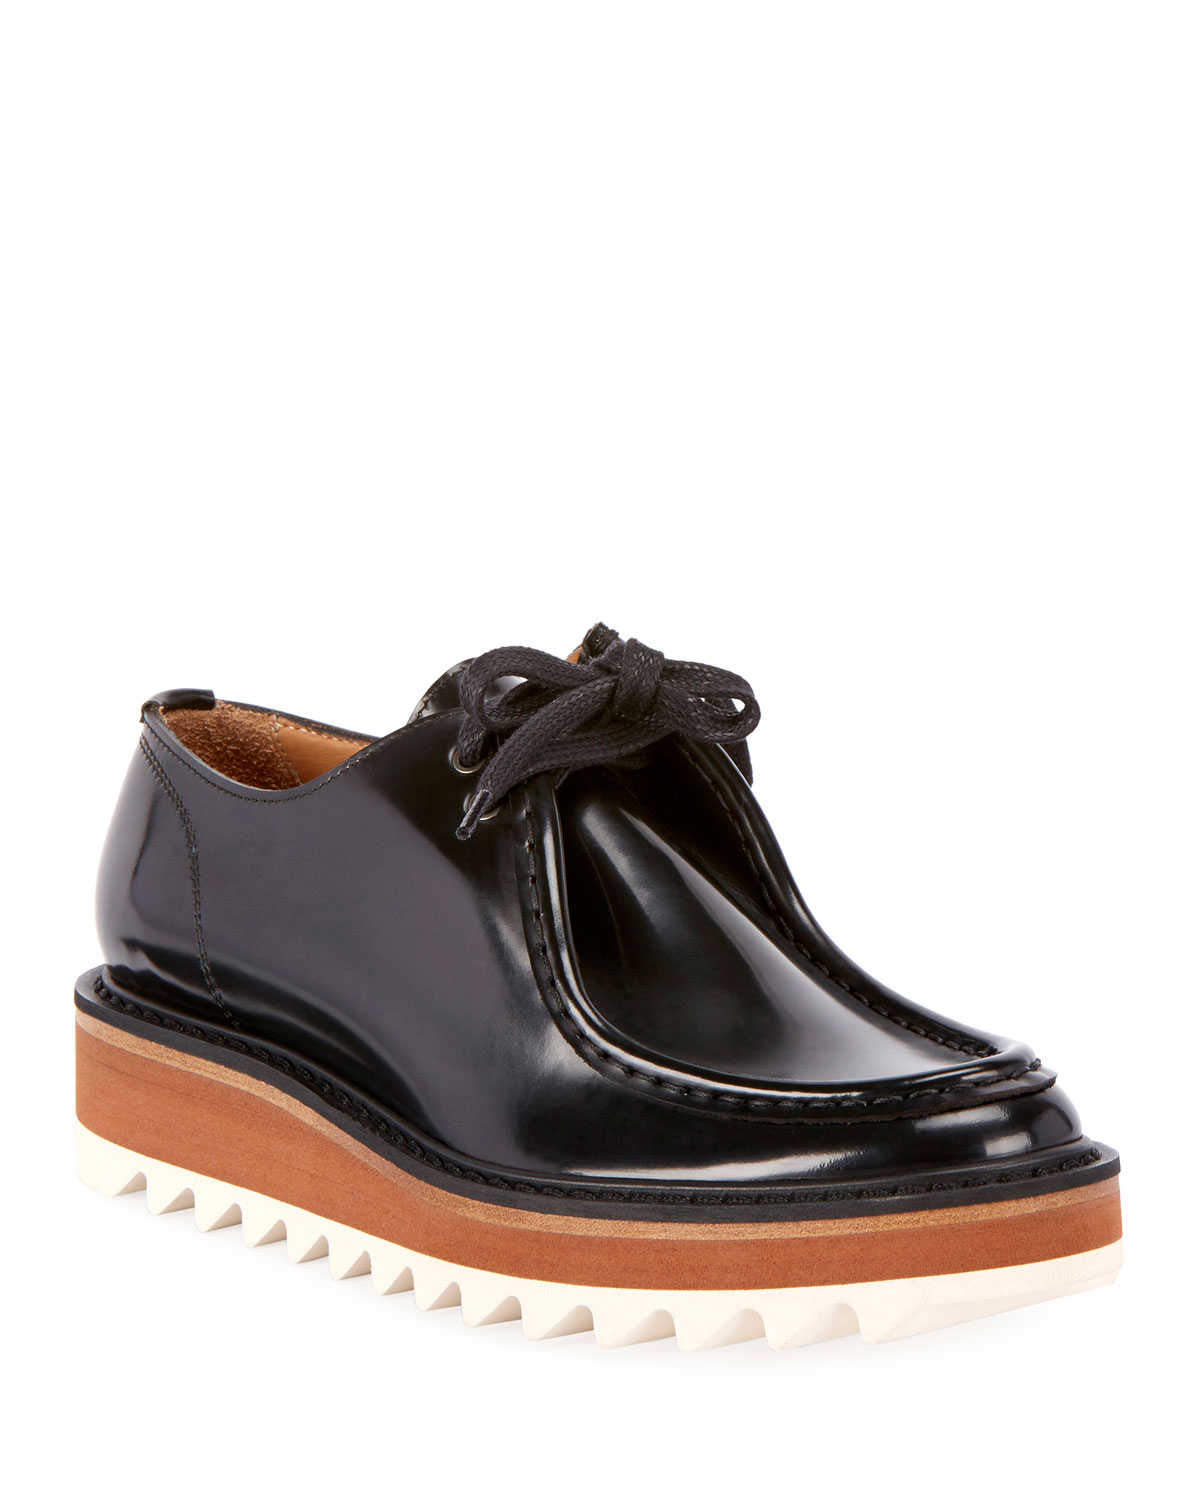 0fd6f9ce28 Dries Van Noten Platform Lace-Up Patent-Leather Wally Shoes